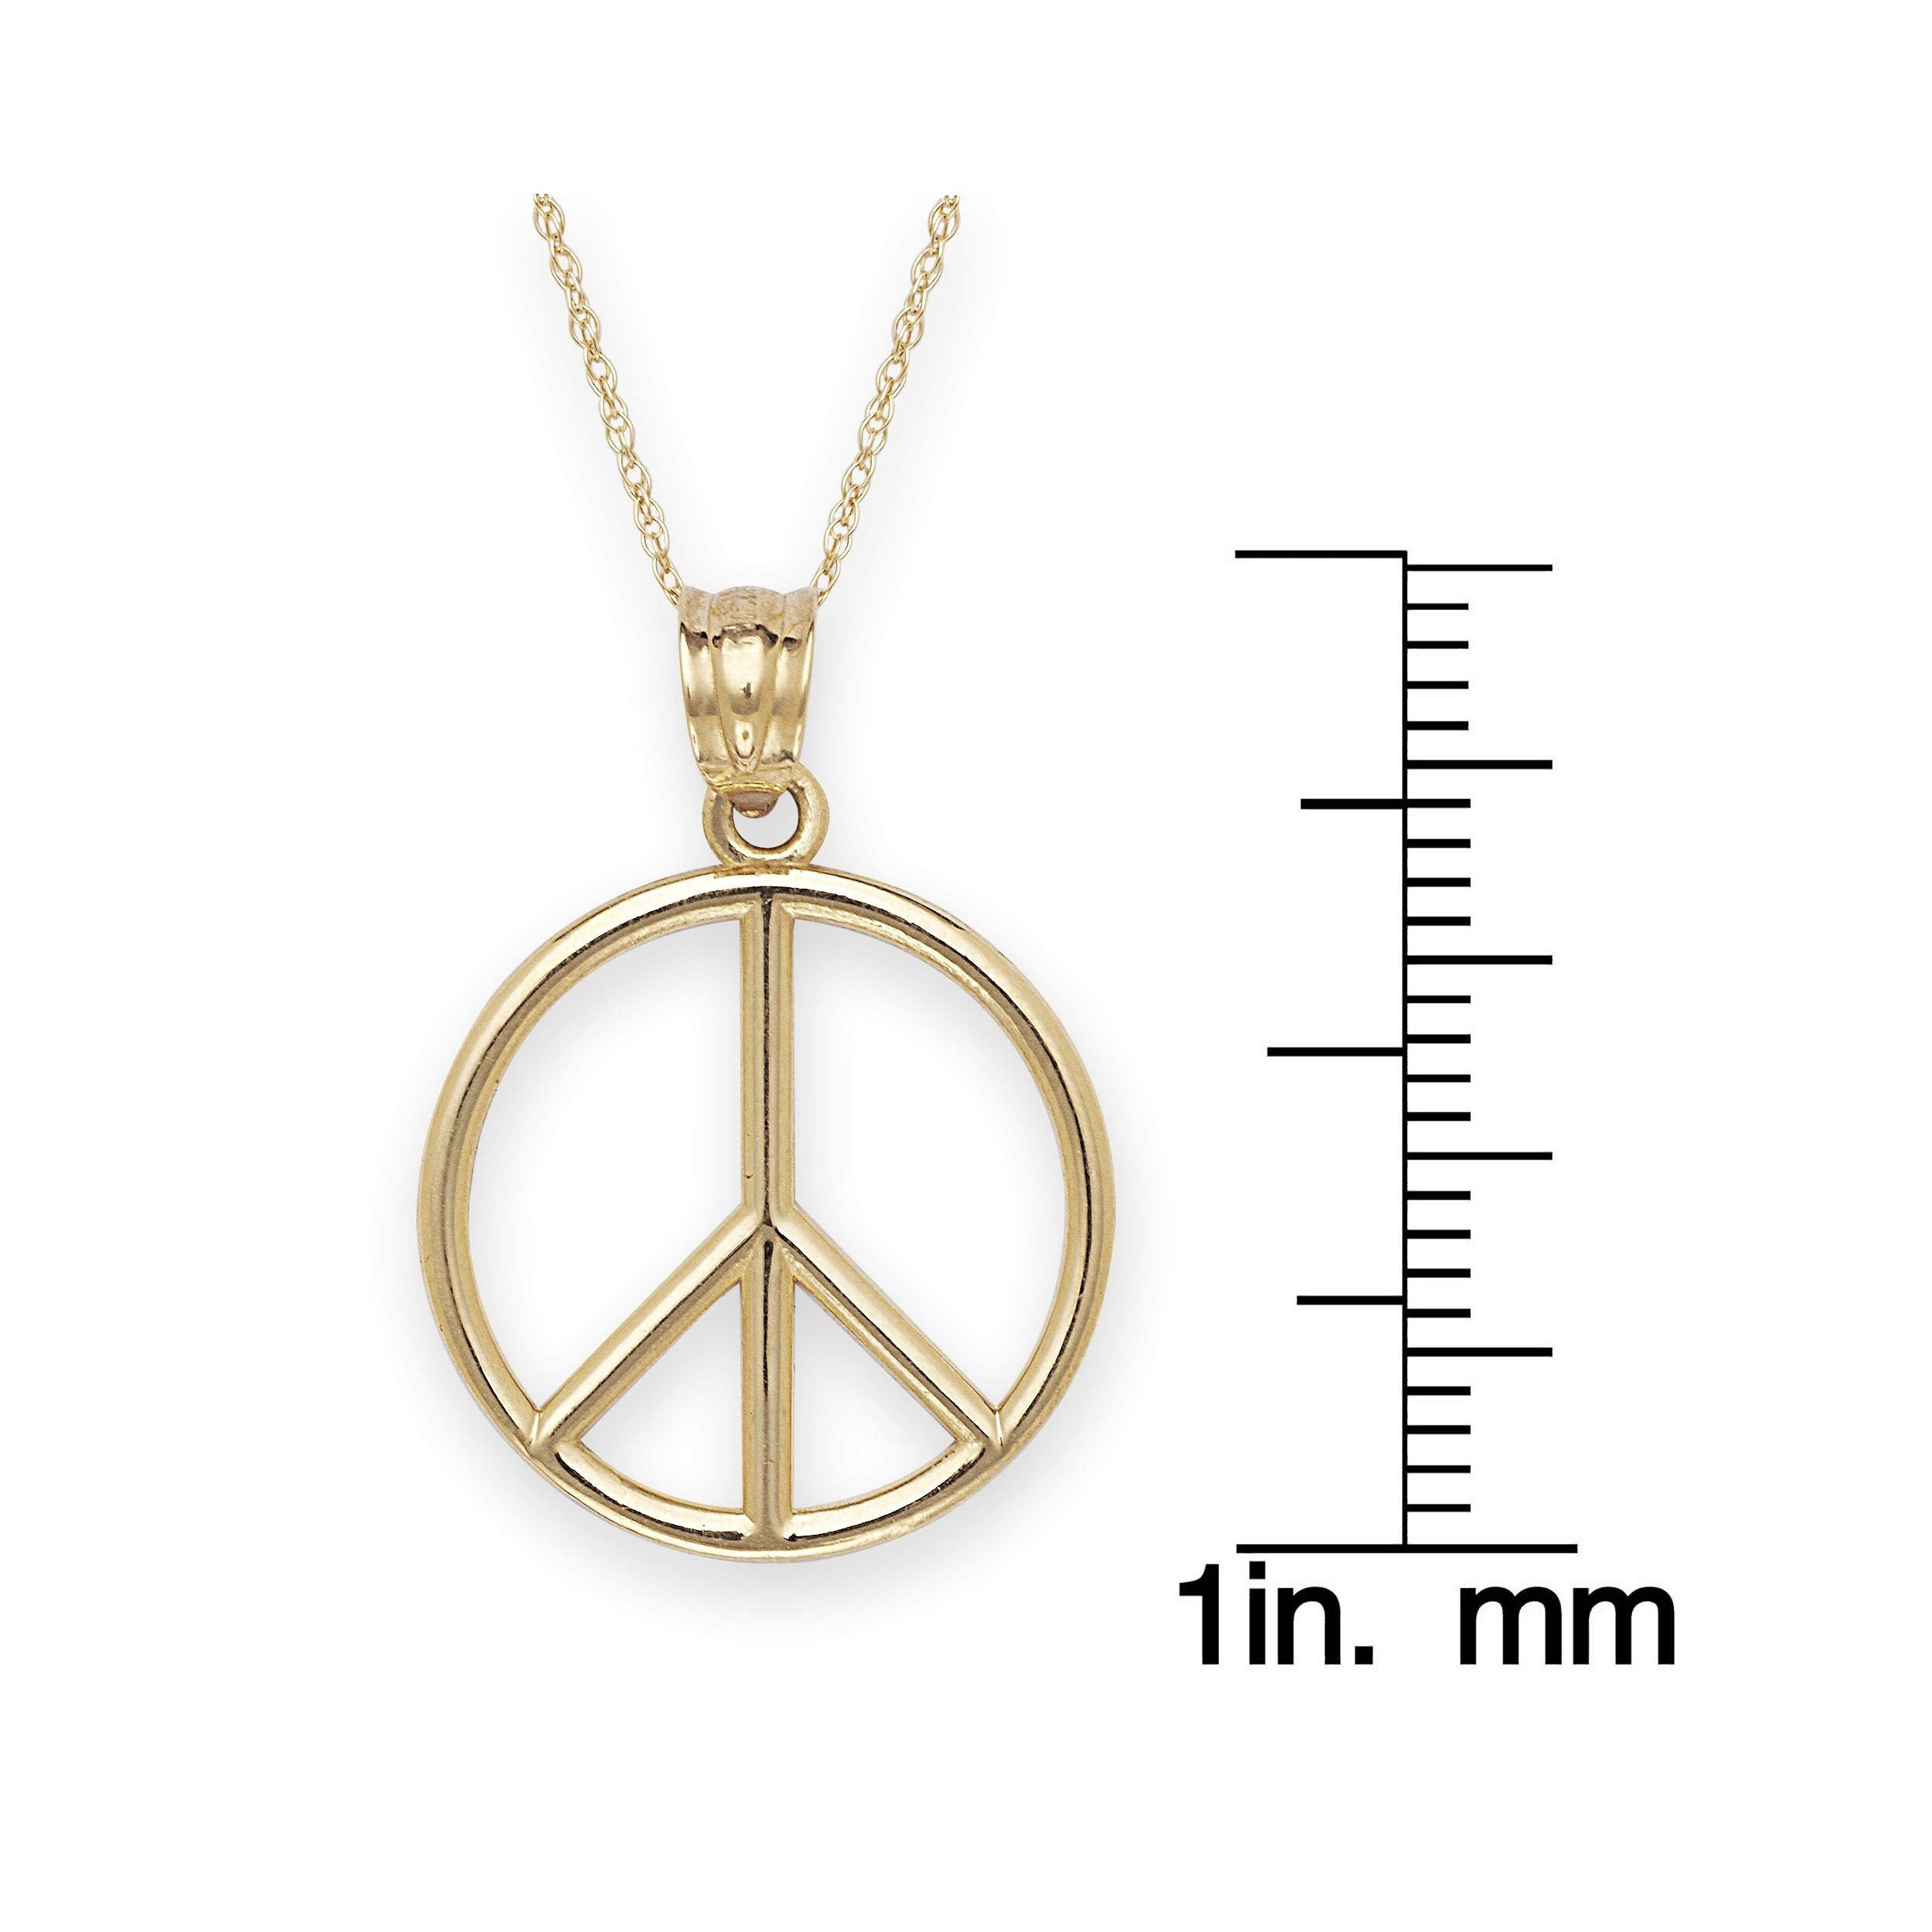 14k gold bold peace sign necklace free shipping today overstock 14k gold bold peace sign necklace free shipping today overstock 17176742 buycottarizona Gallery